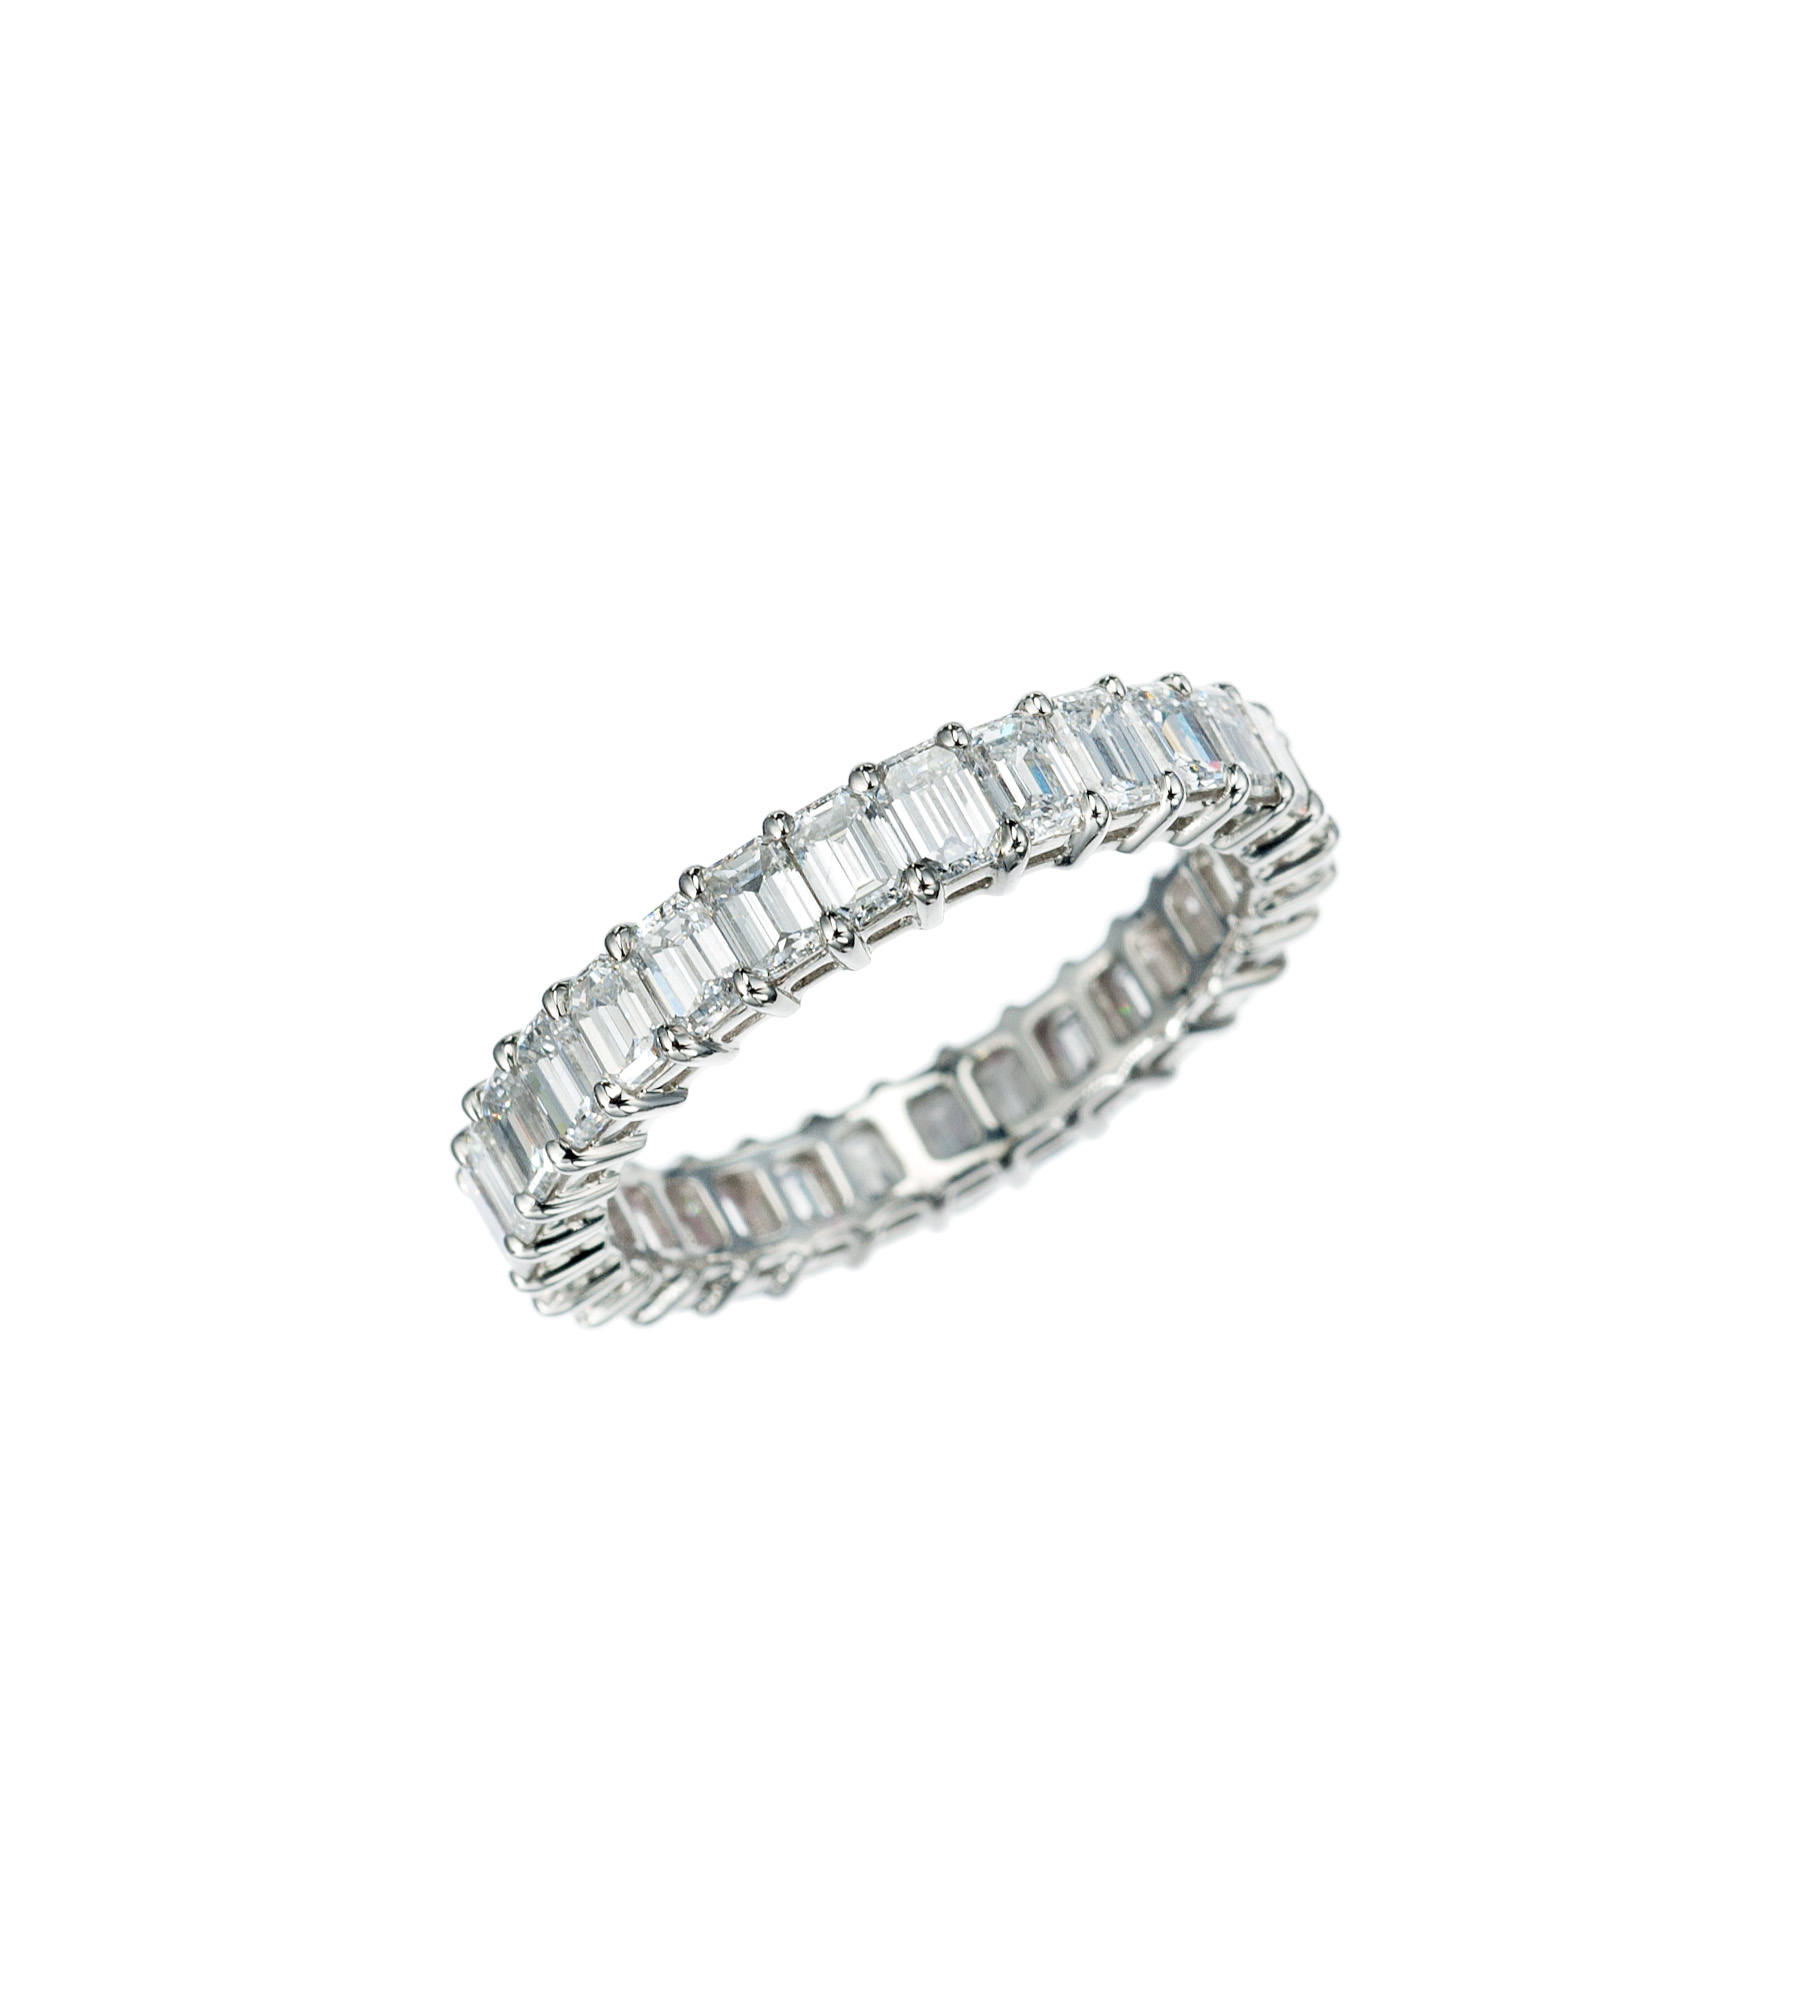 Emerald-cut diamond eternity band